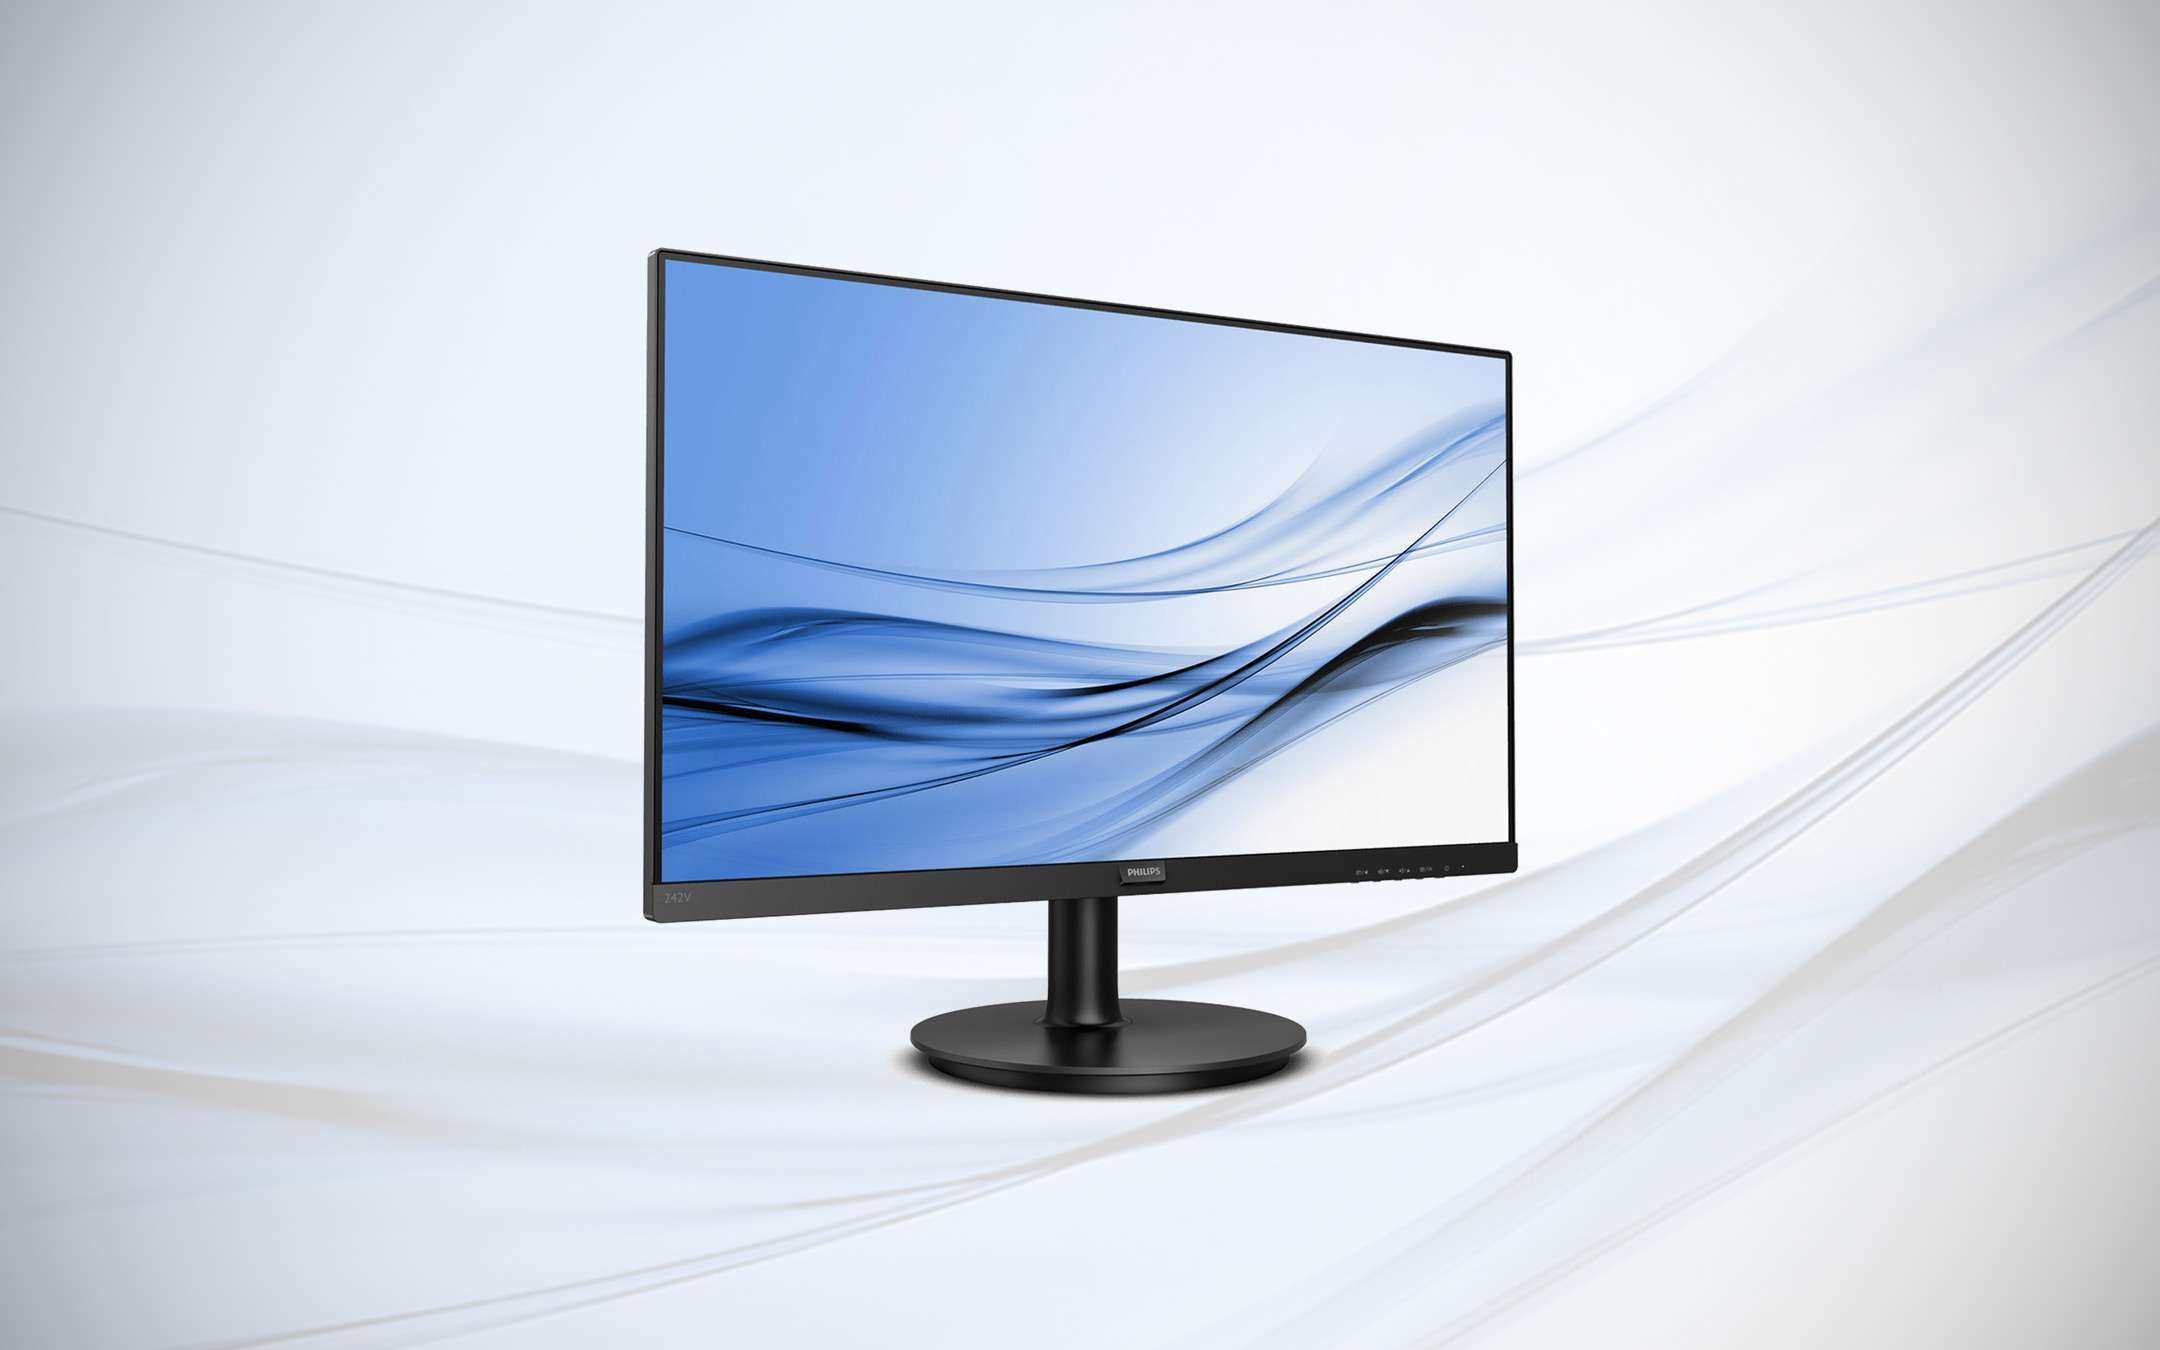 Only € 89.99 for the Philips 23.8 inch monitor